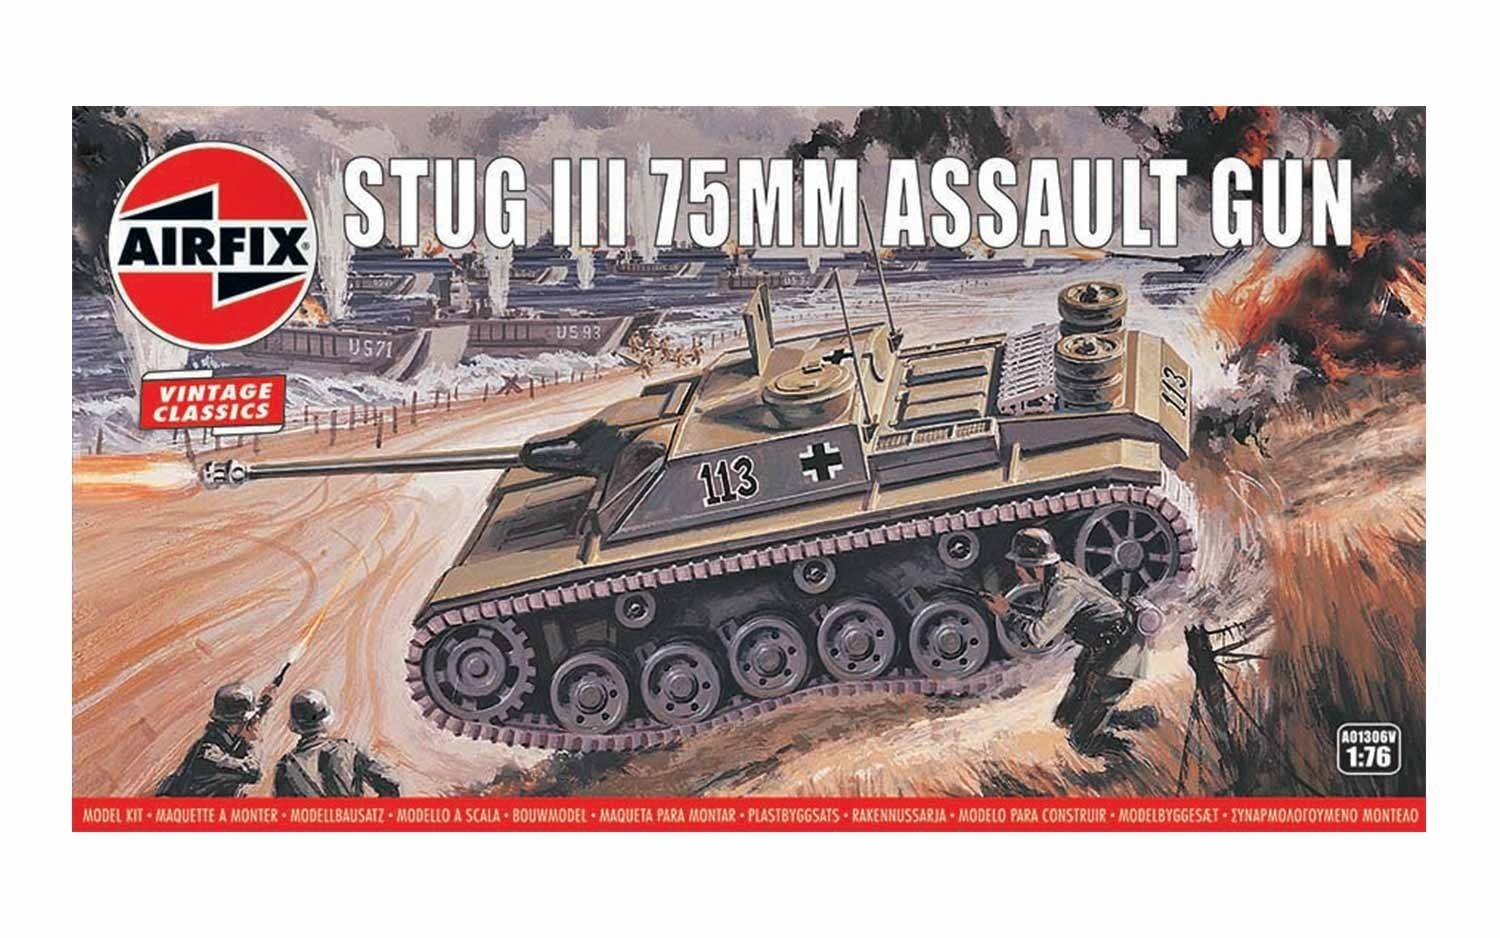 Airfix Vintage Classics Stug III 75mm Assault Gun Tank 1:76 Military Ground Vehicle Plastic Model Kit A01306V